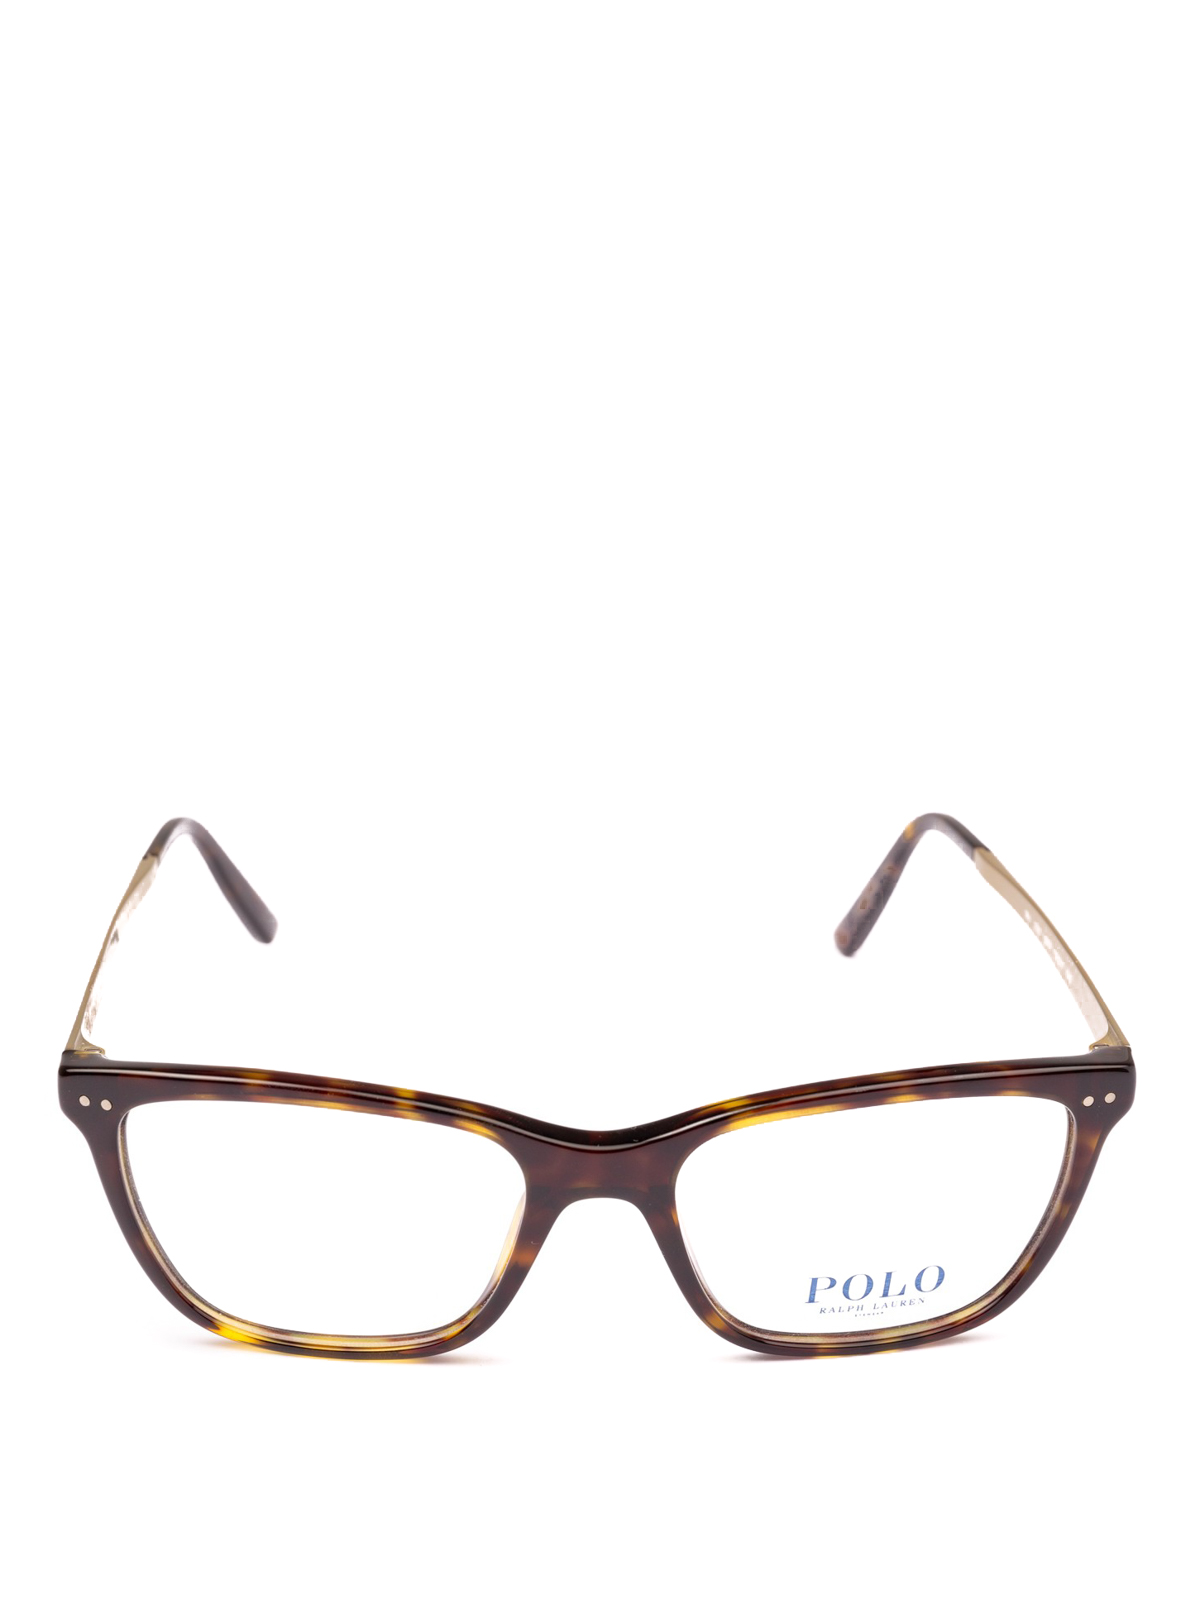 a058e1b9ca1b sweden norway polo ralph lauren glasses online metal and acetate frame  rectangle glasses b0d9a 7a73d fb7f0